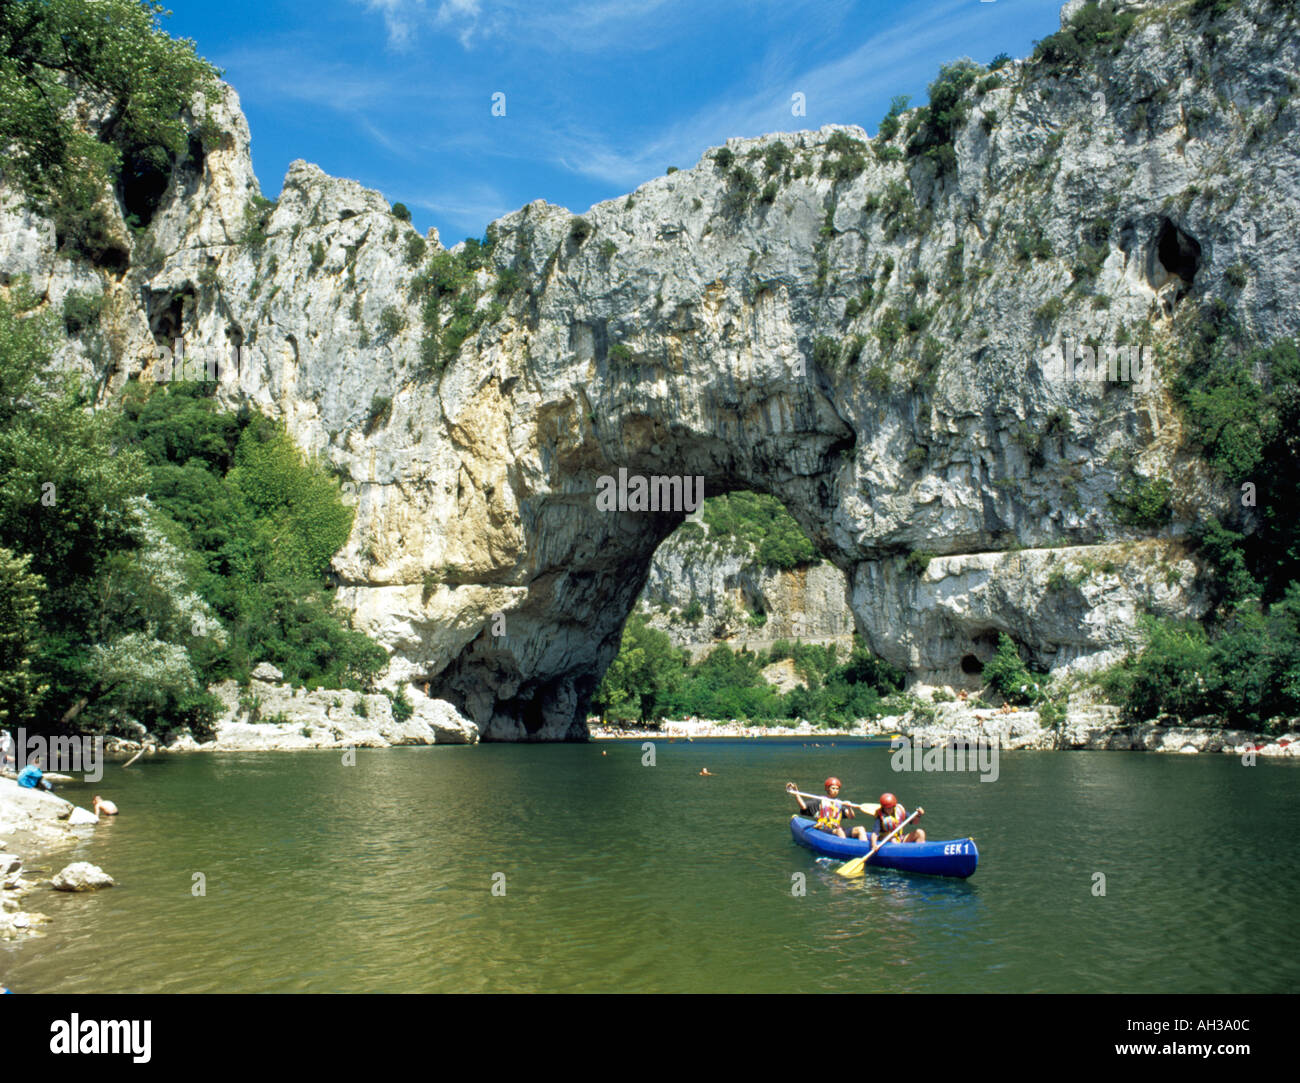 Canoeing Near Le Pont D Arc On The River Ardeche Stock Photo